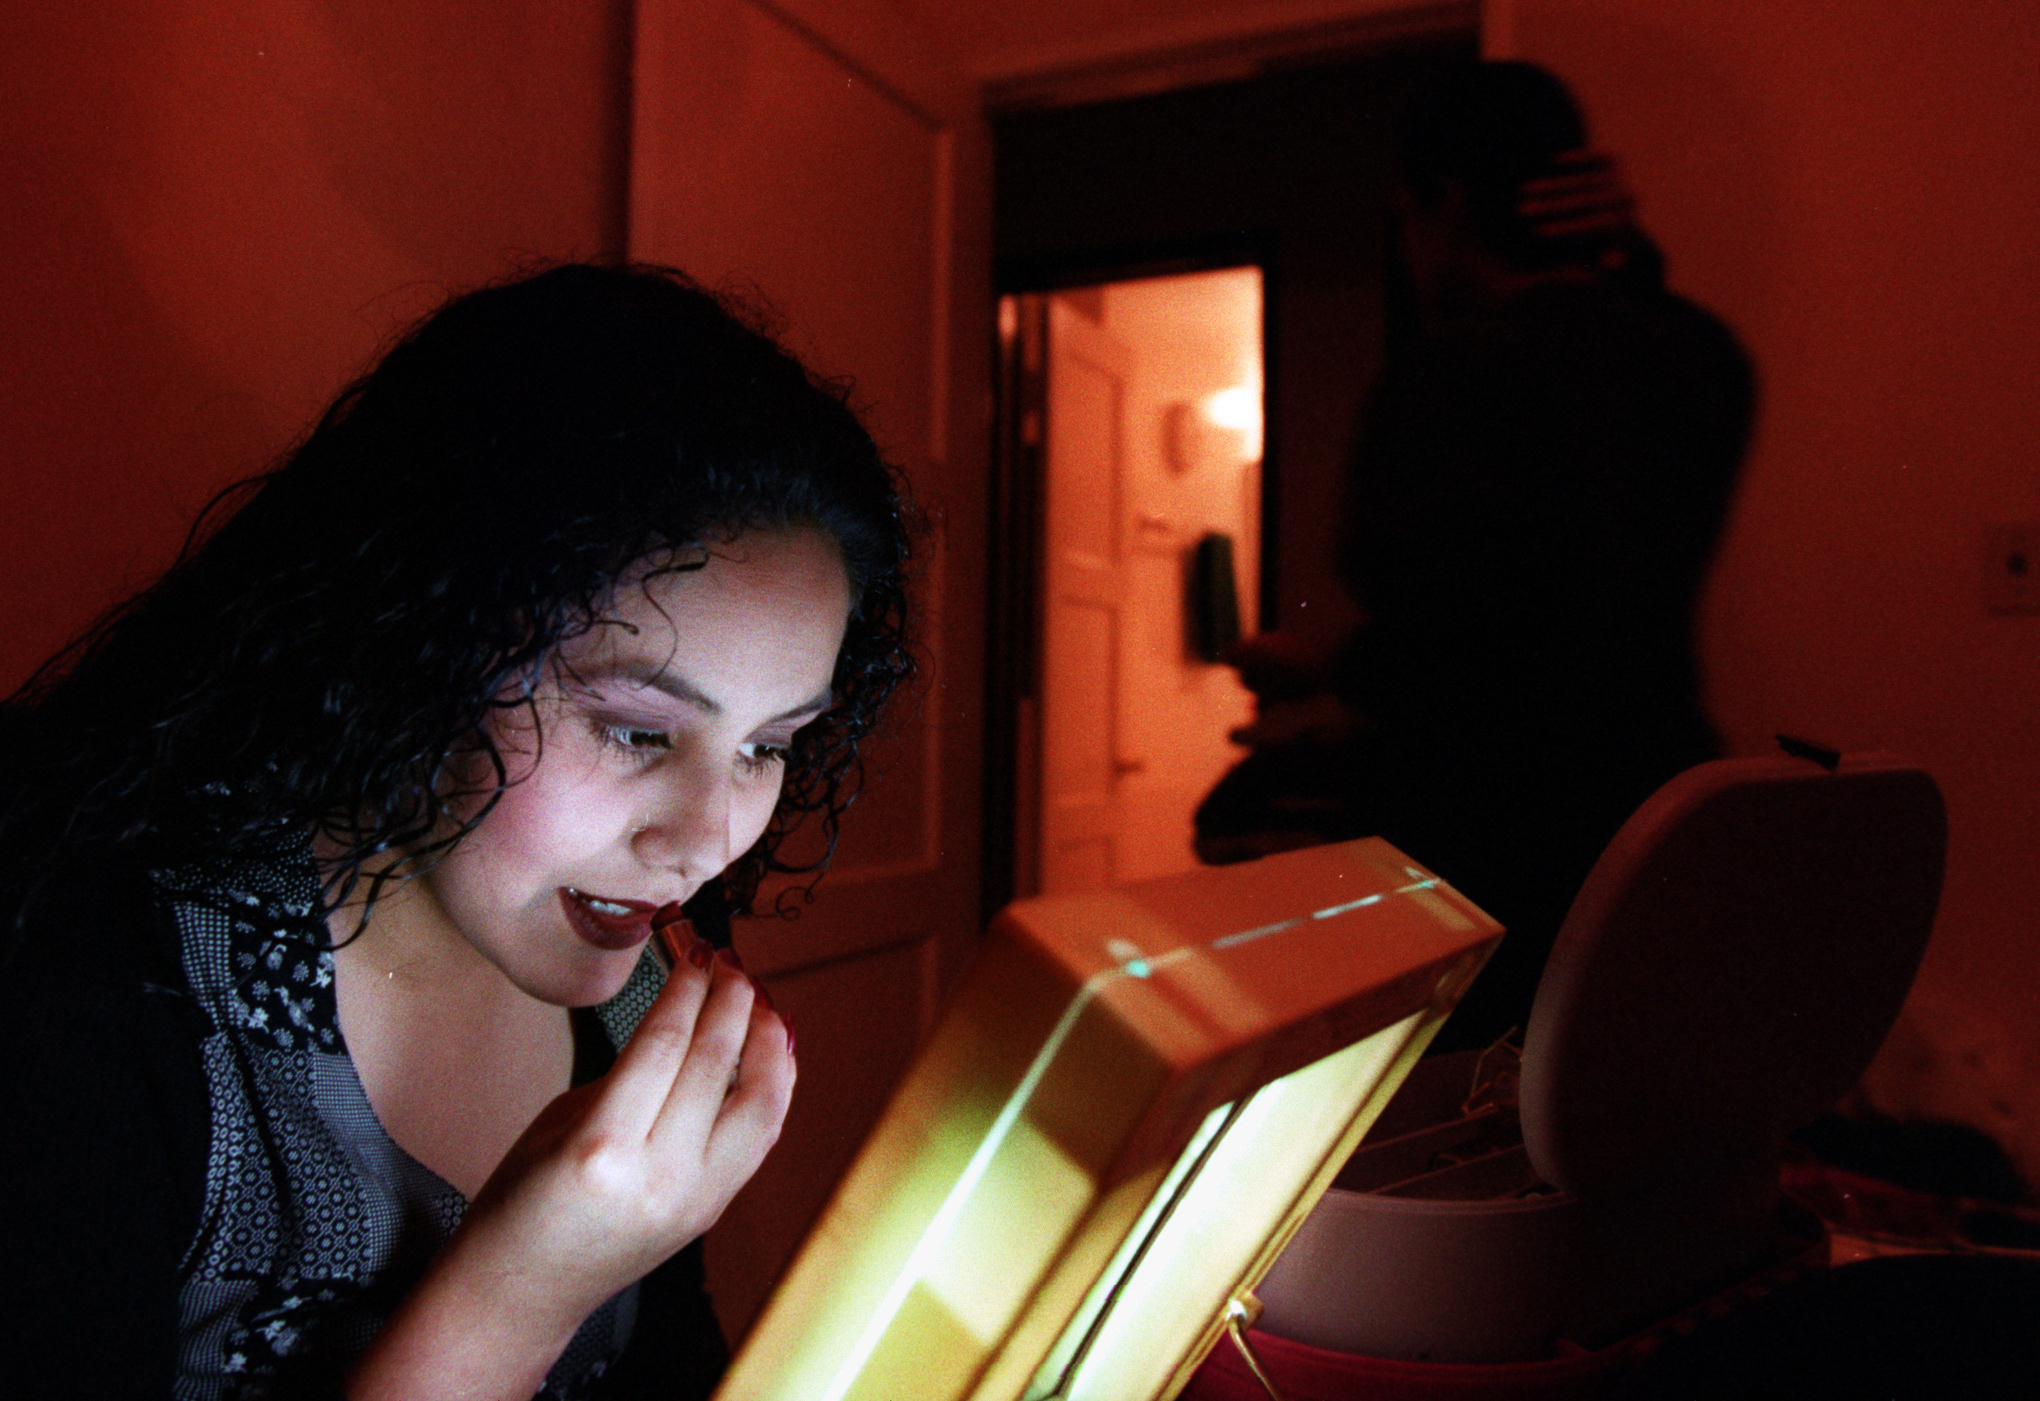 Listening to '60s music on the stereo,  Araceli Almaguer,  17, prepares to go out with friendson a recent Saturday night.  ©Gail Fisher Los Angeles Times